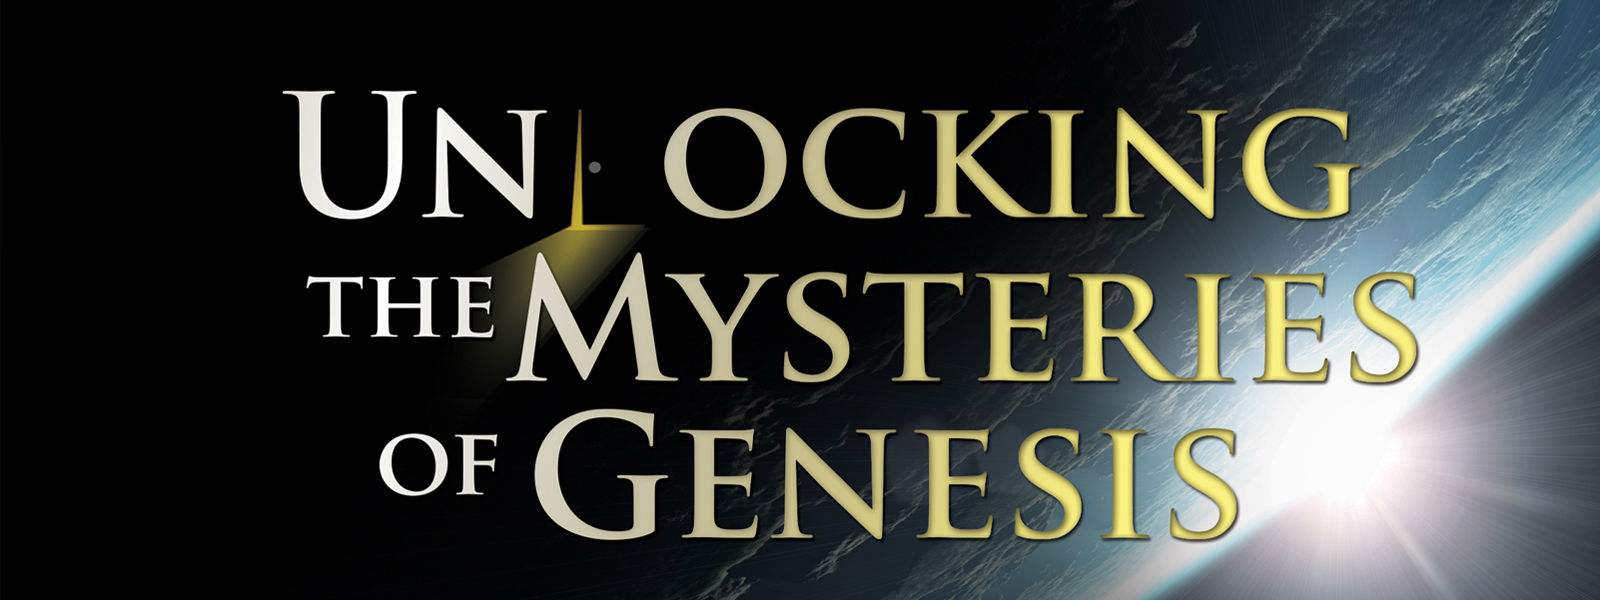 Unlocking the Mysteries of Genesis